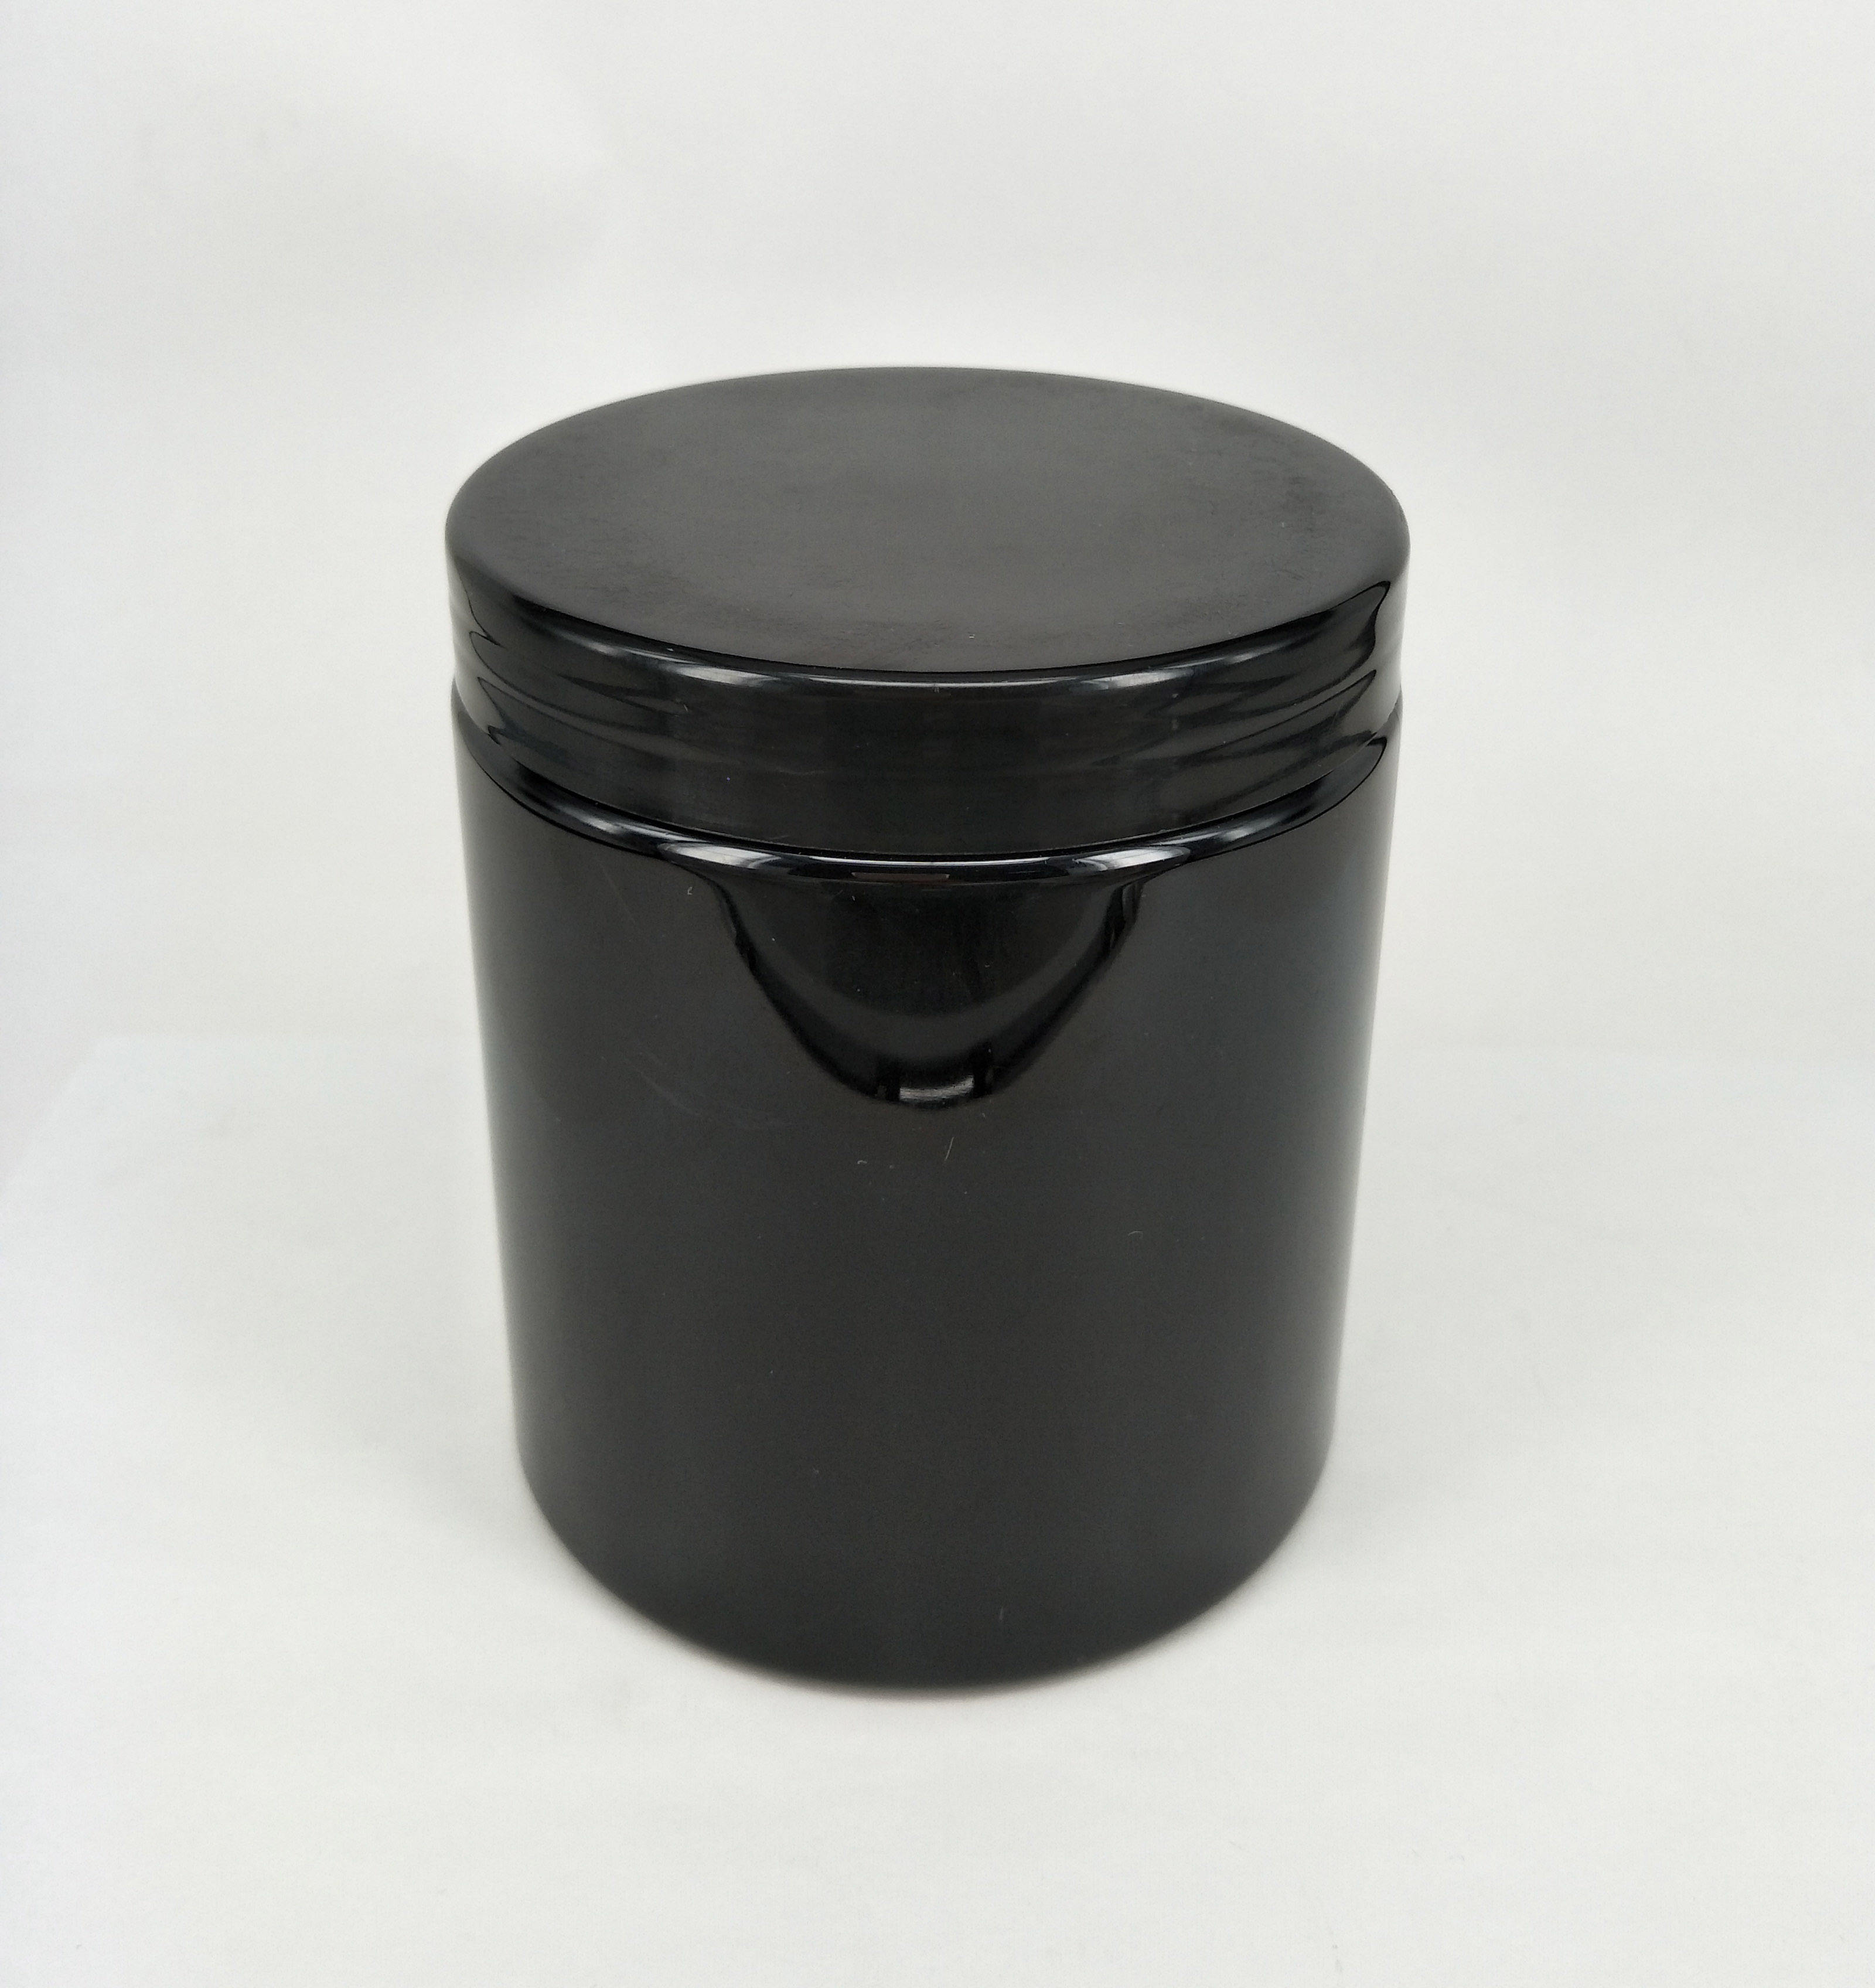 Black Matte Soft Touch or Shiny black PET Protein Powder Jar